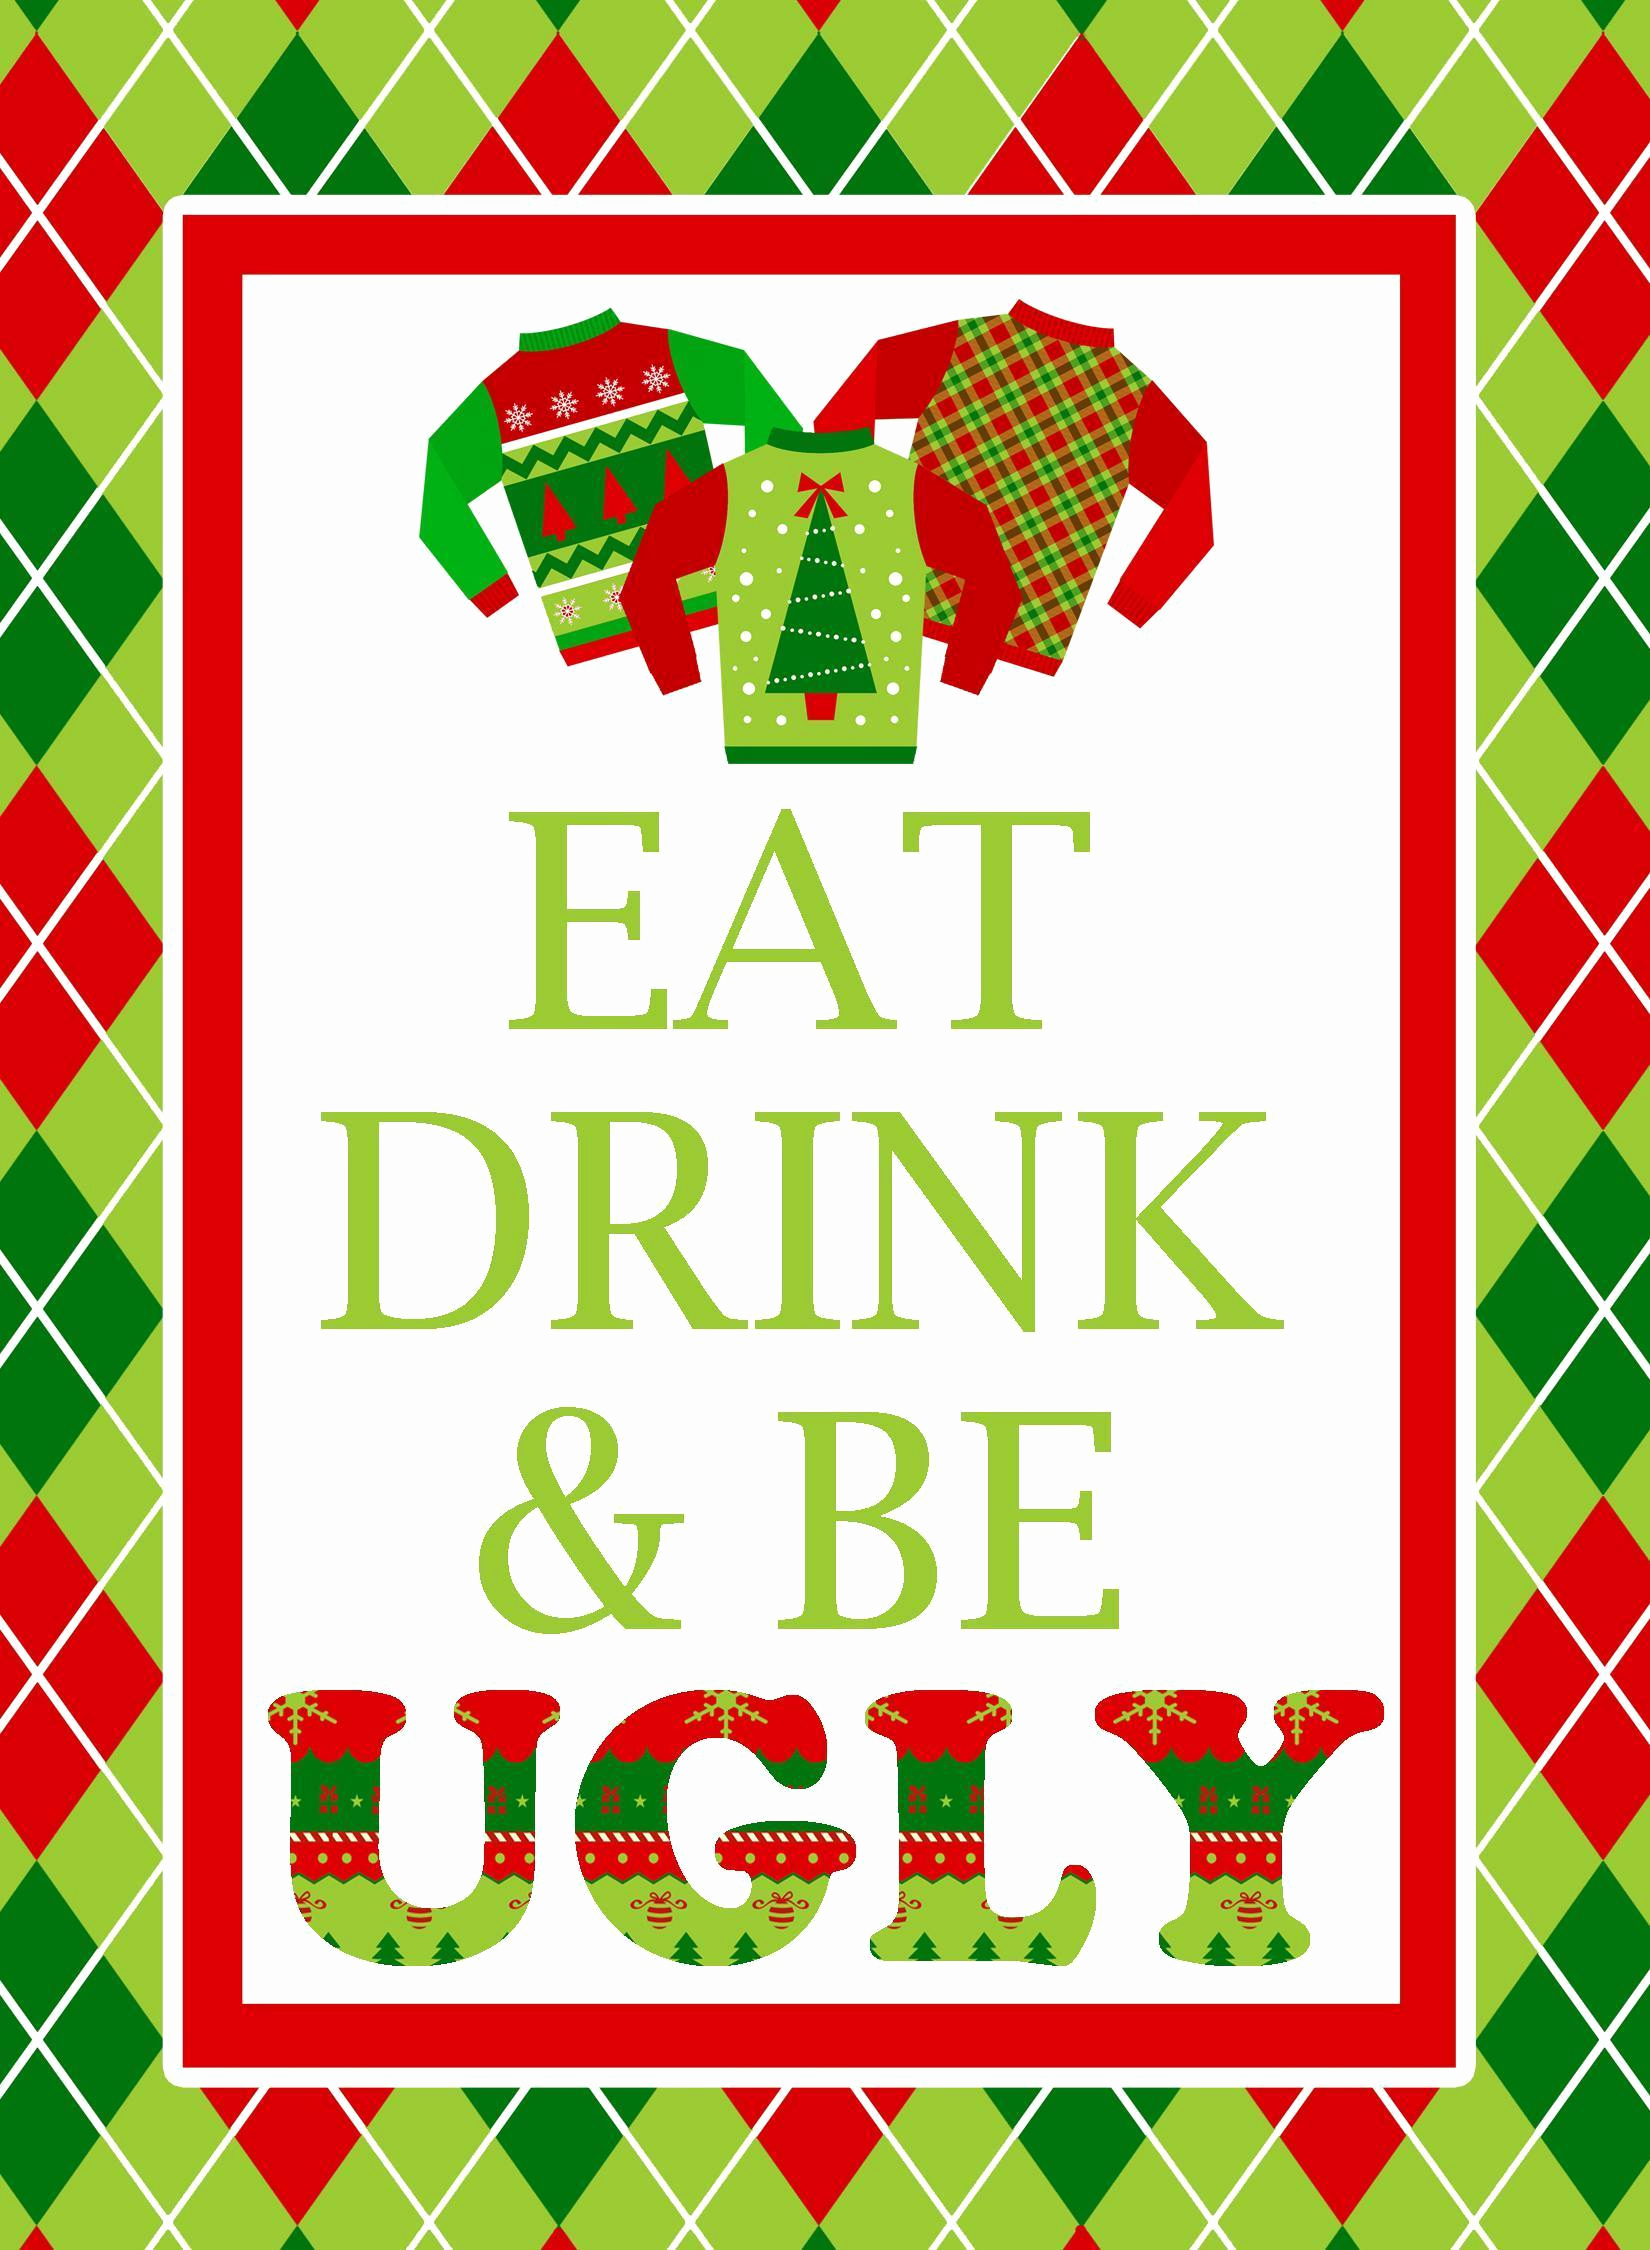 Ugly Sweater Invitation Template New Ugly Sweater Invitation Template Free Ugly Sweater Party